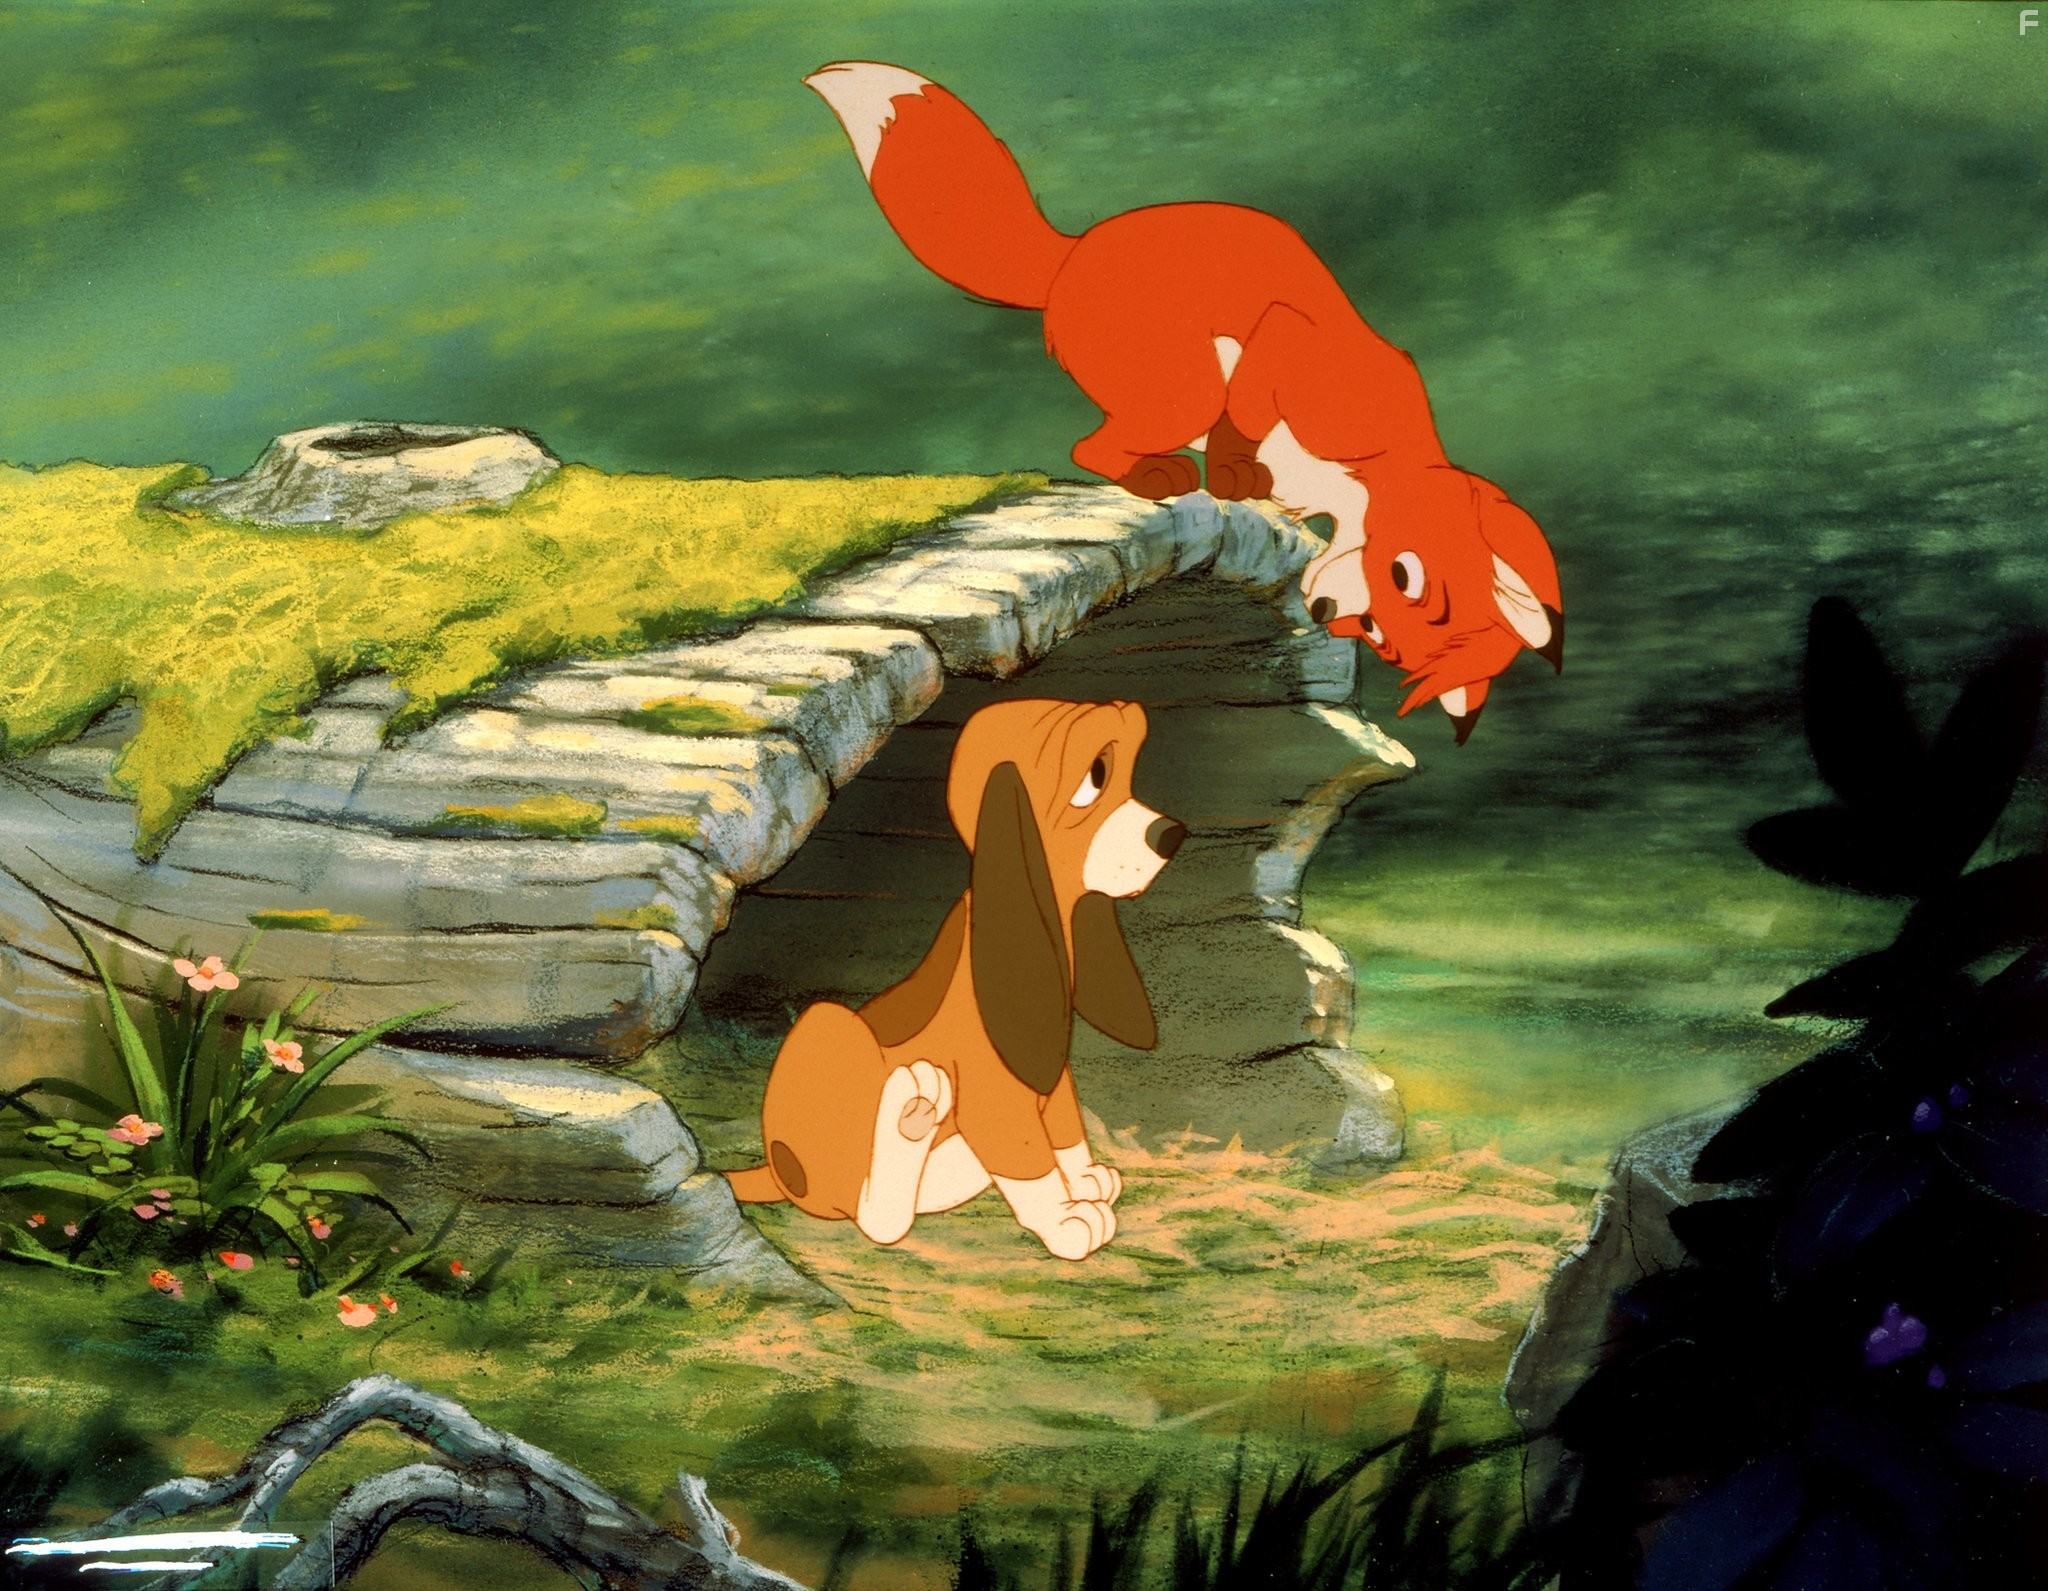 f29935-lis-i-pes-the-fox-and-the-hound-1981_original